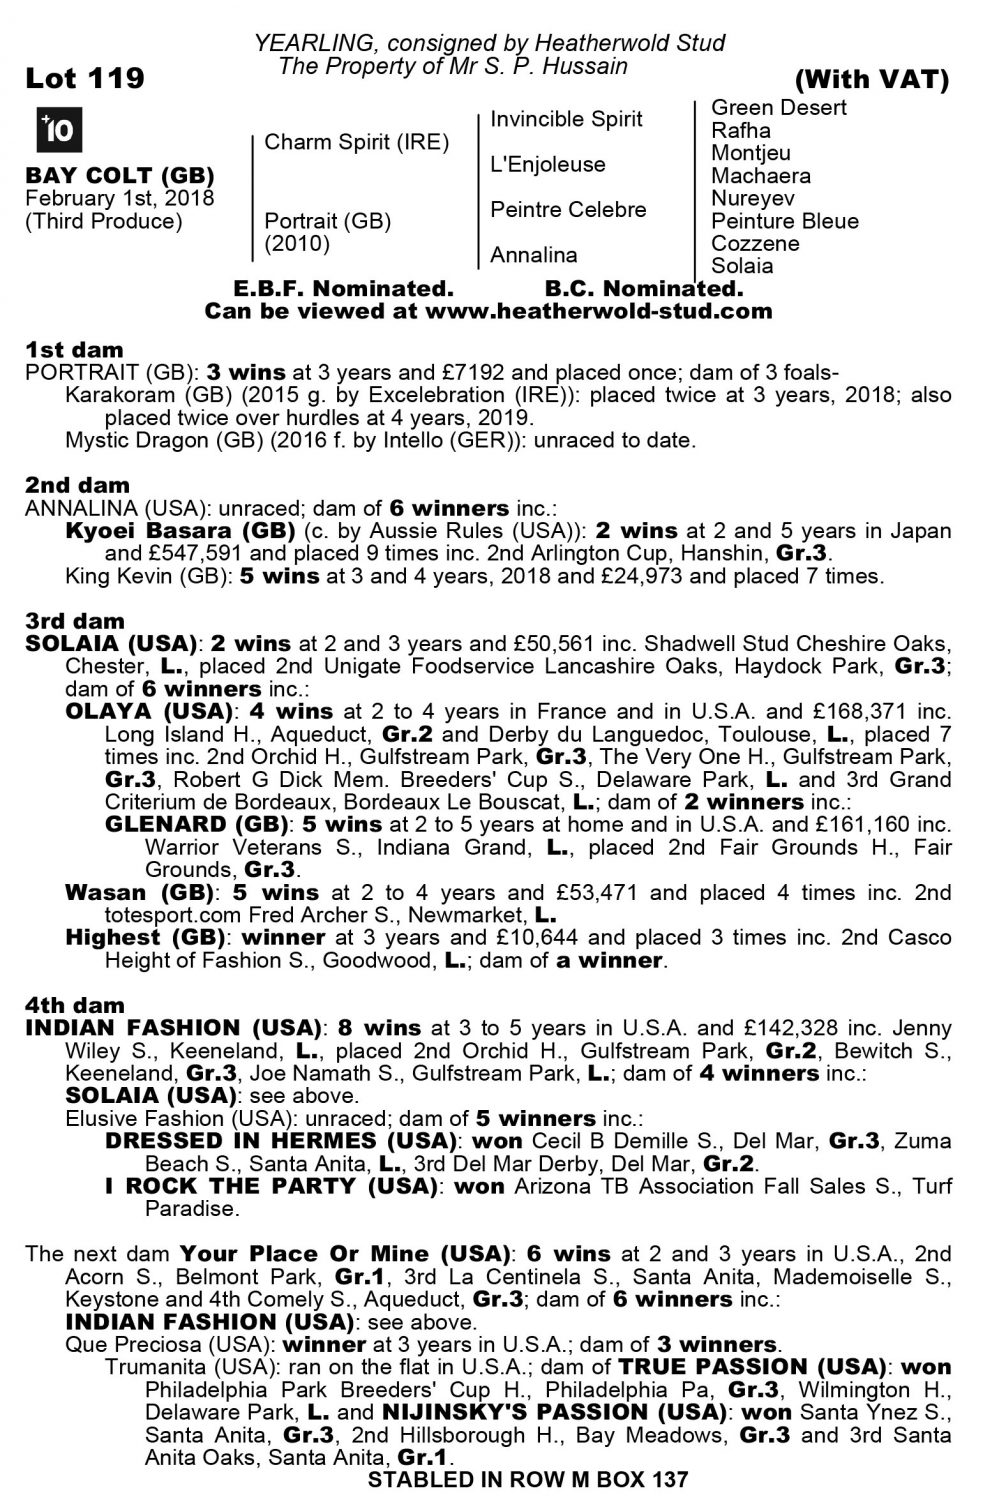 Detailed pedigree of Heatherwold Stud yearling colt by Charm Spirit out of Portrait